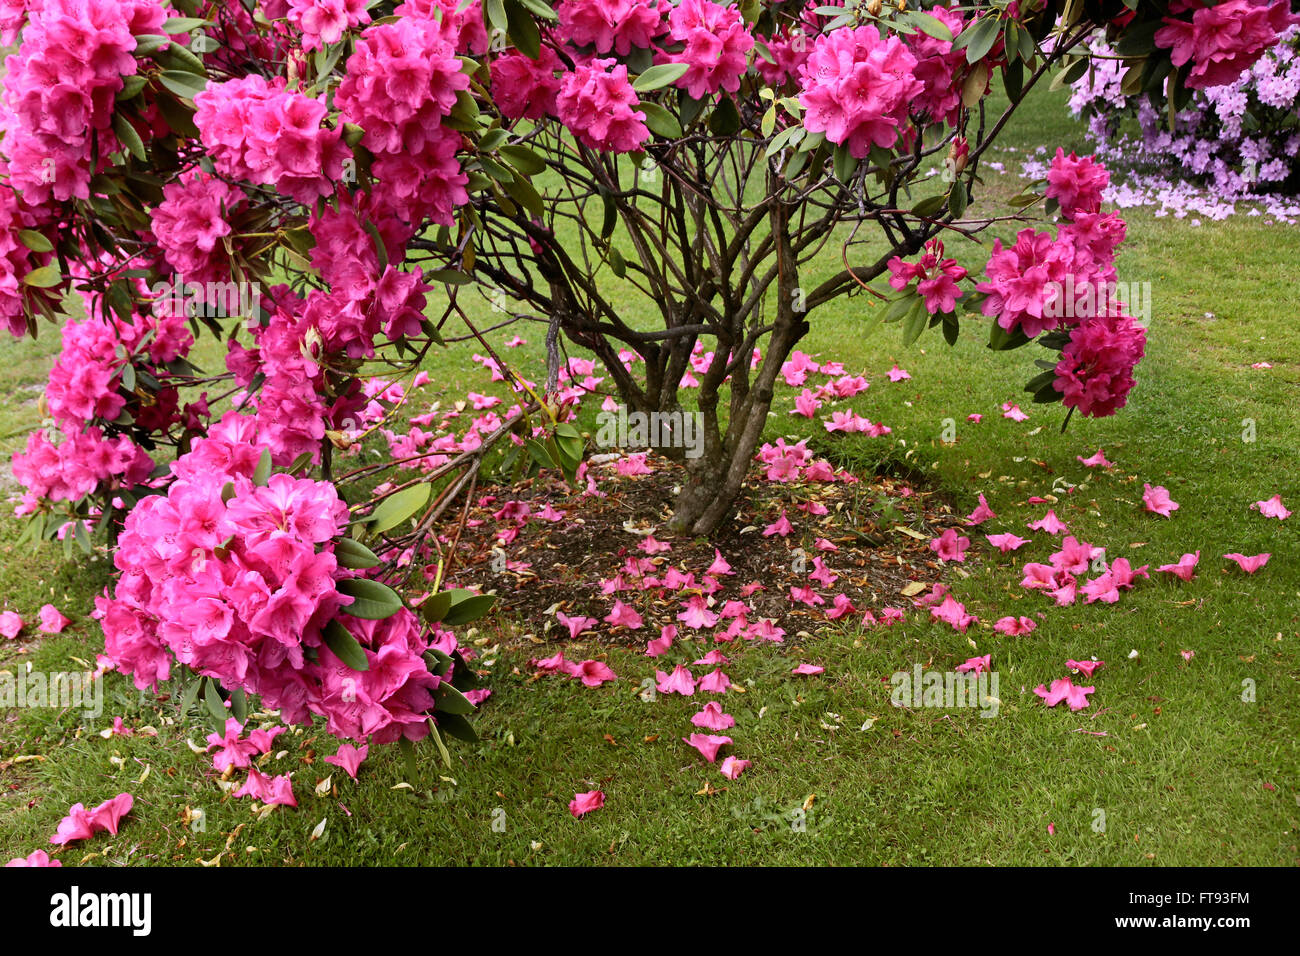 Pink Rhododendron bush in the Queenstown Gardens, Otago, South island,  New Zealand - Stock Image